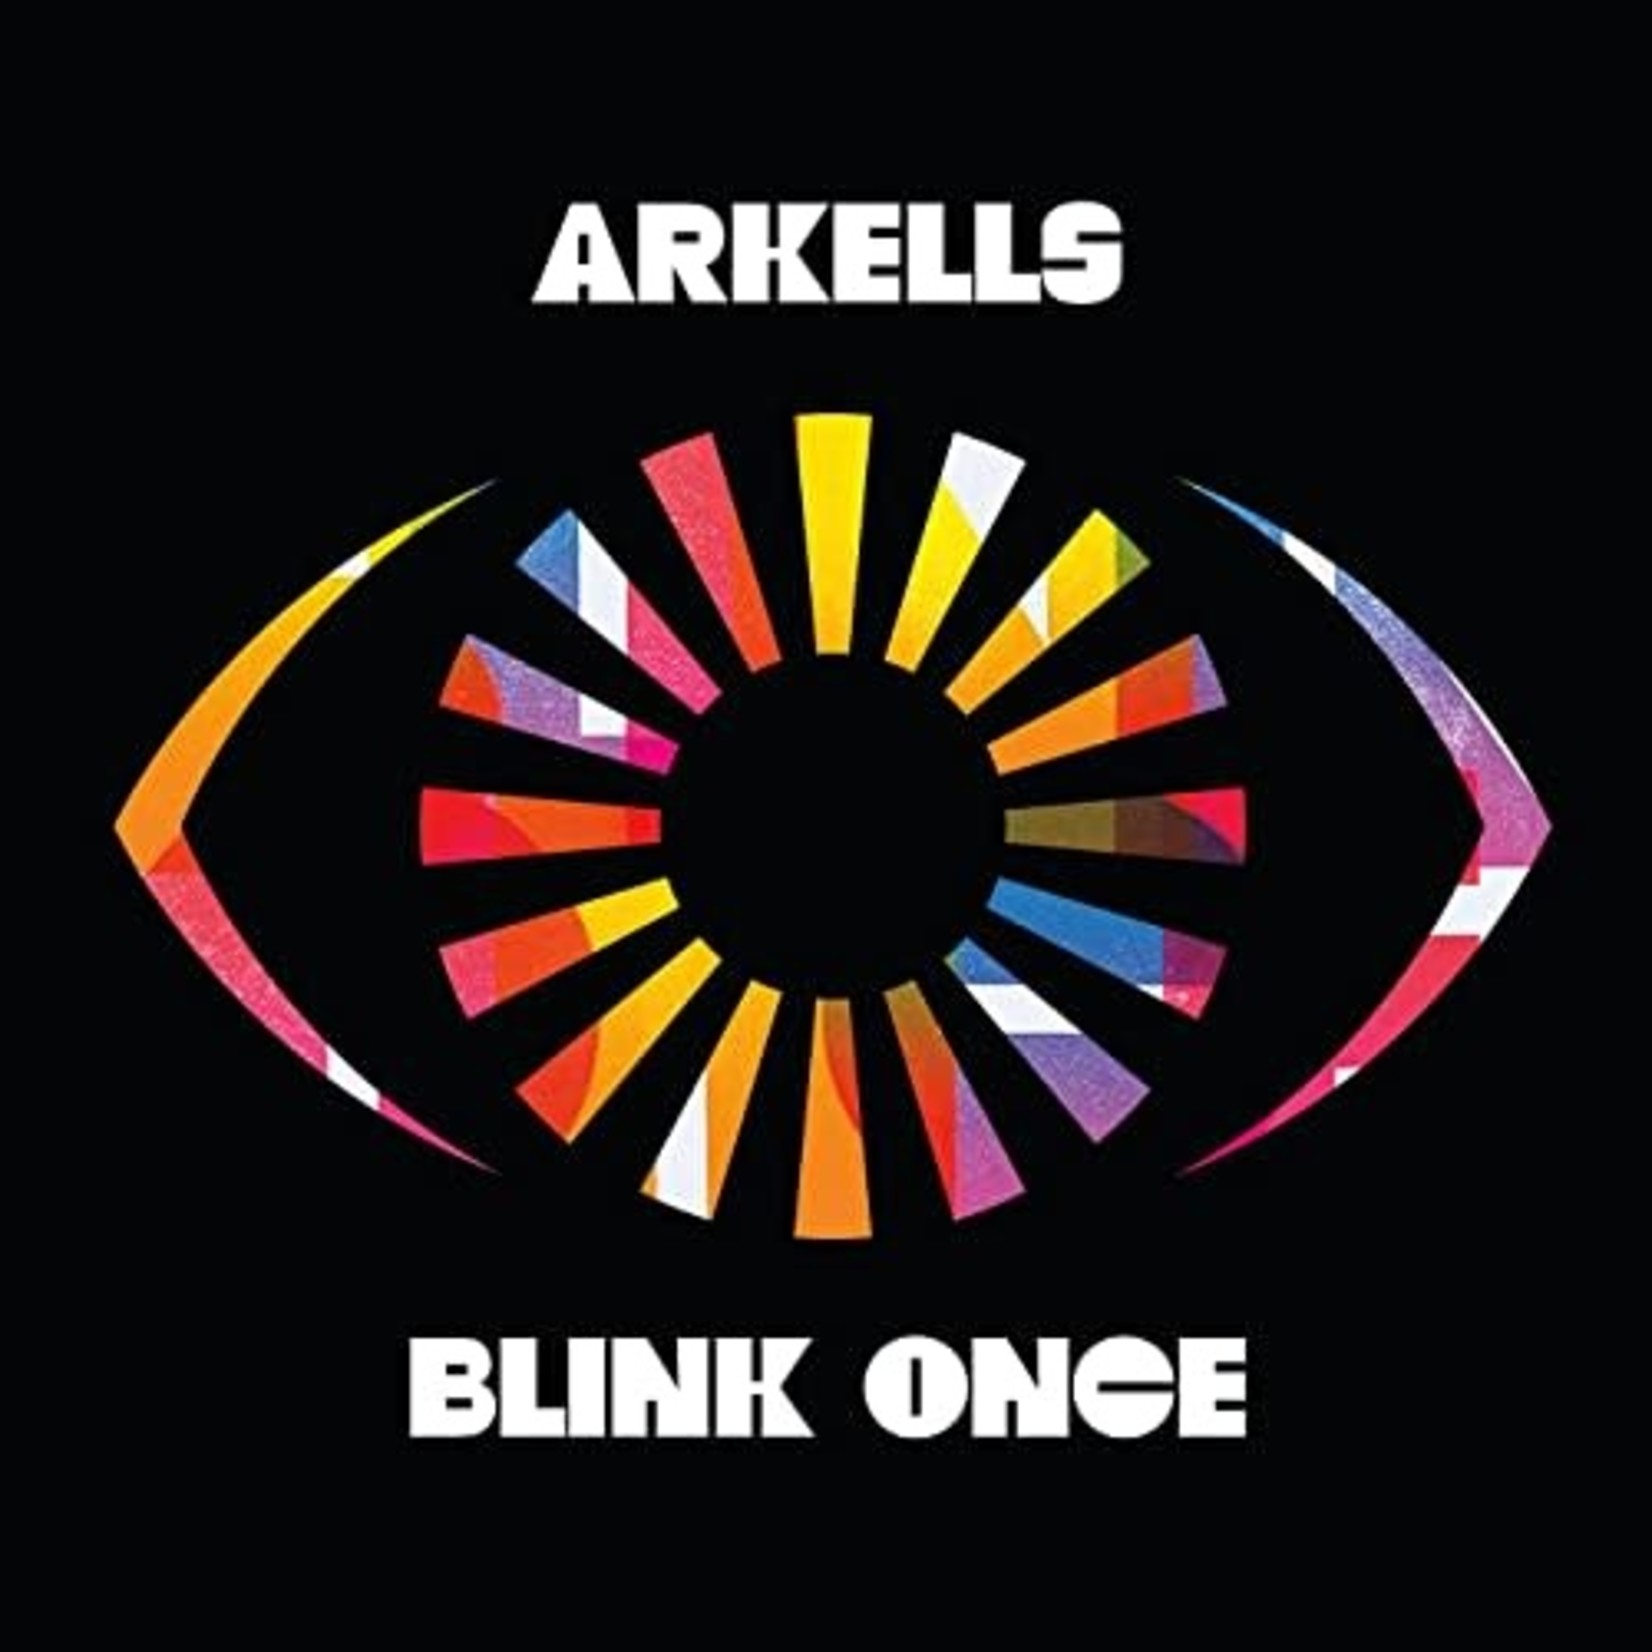 [New] Arkells: Blink Once [SELF RELEASE]